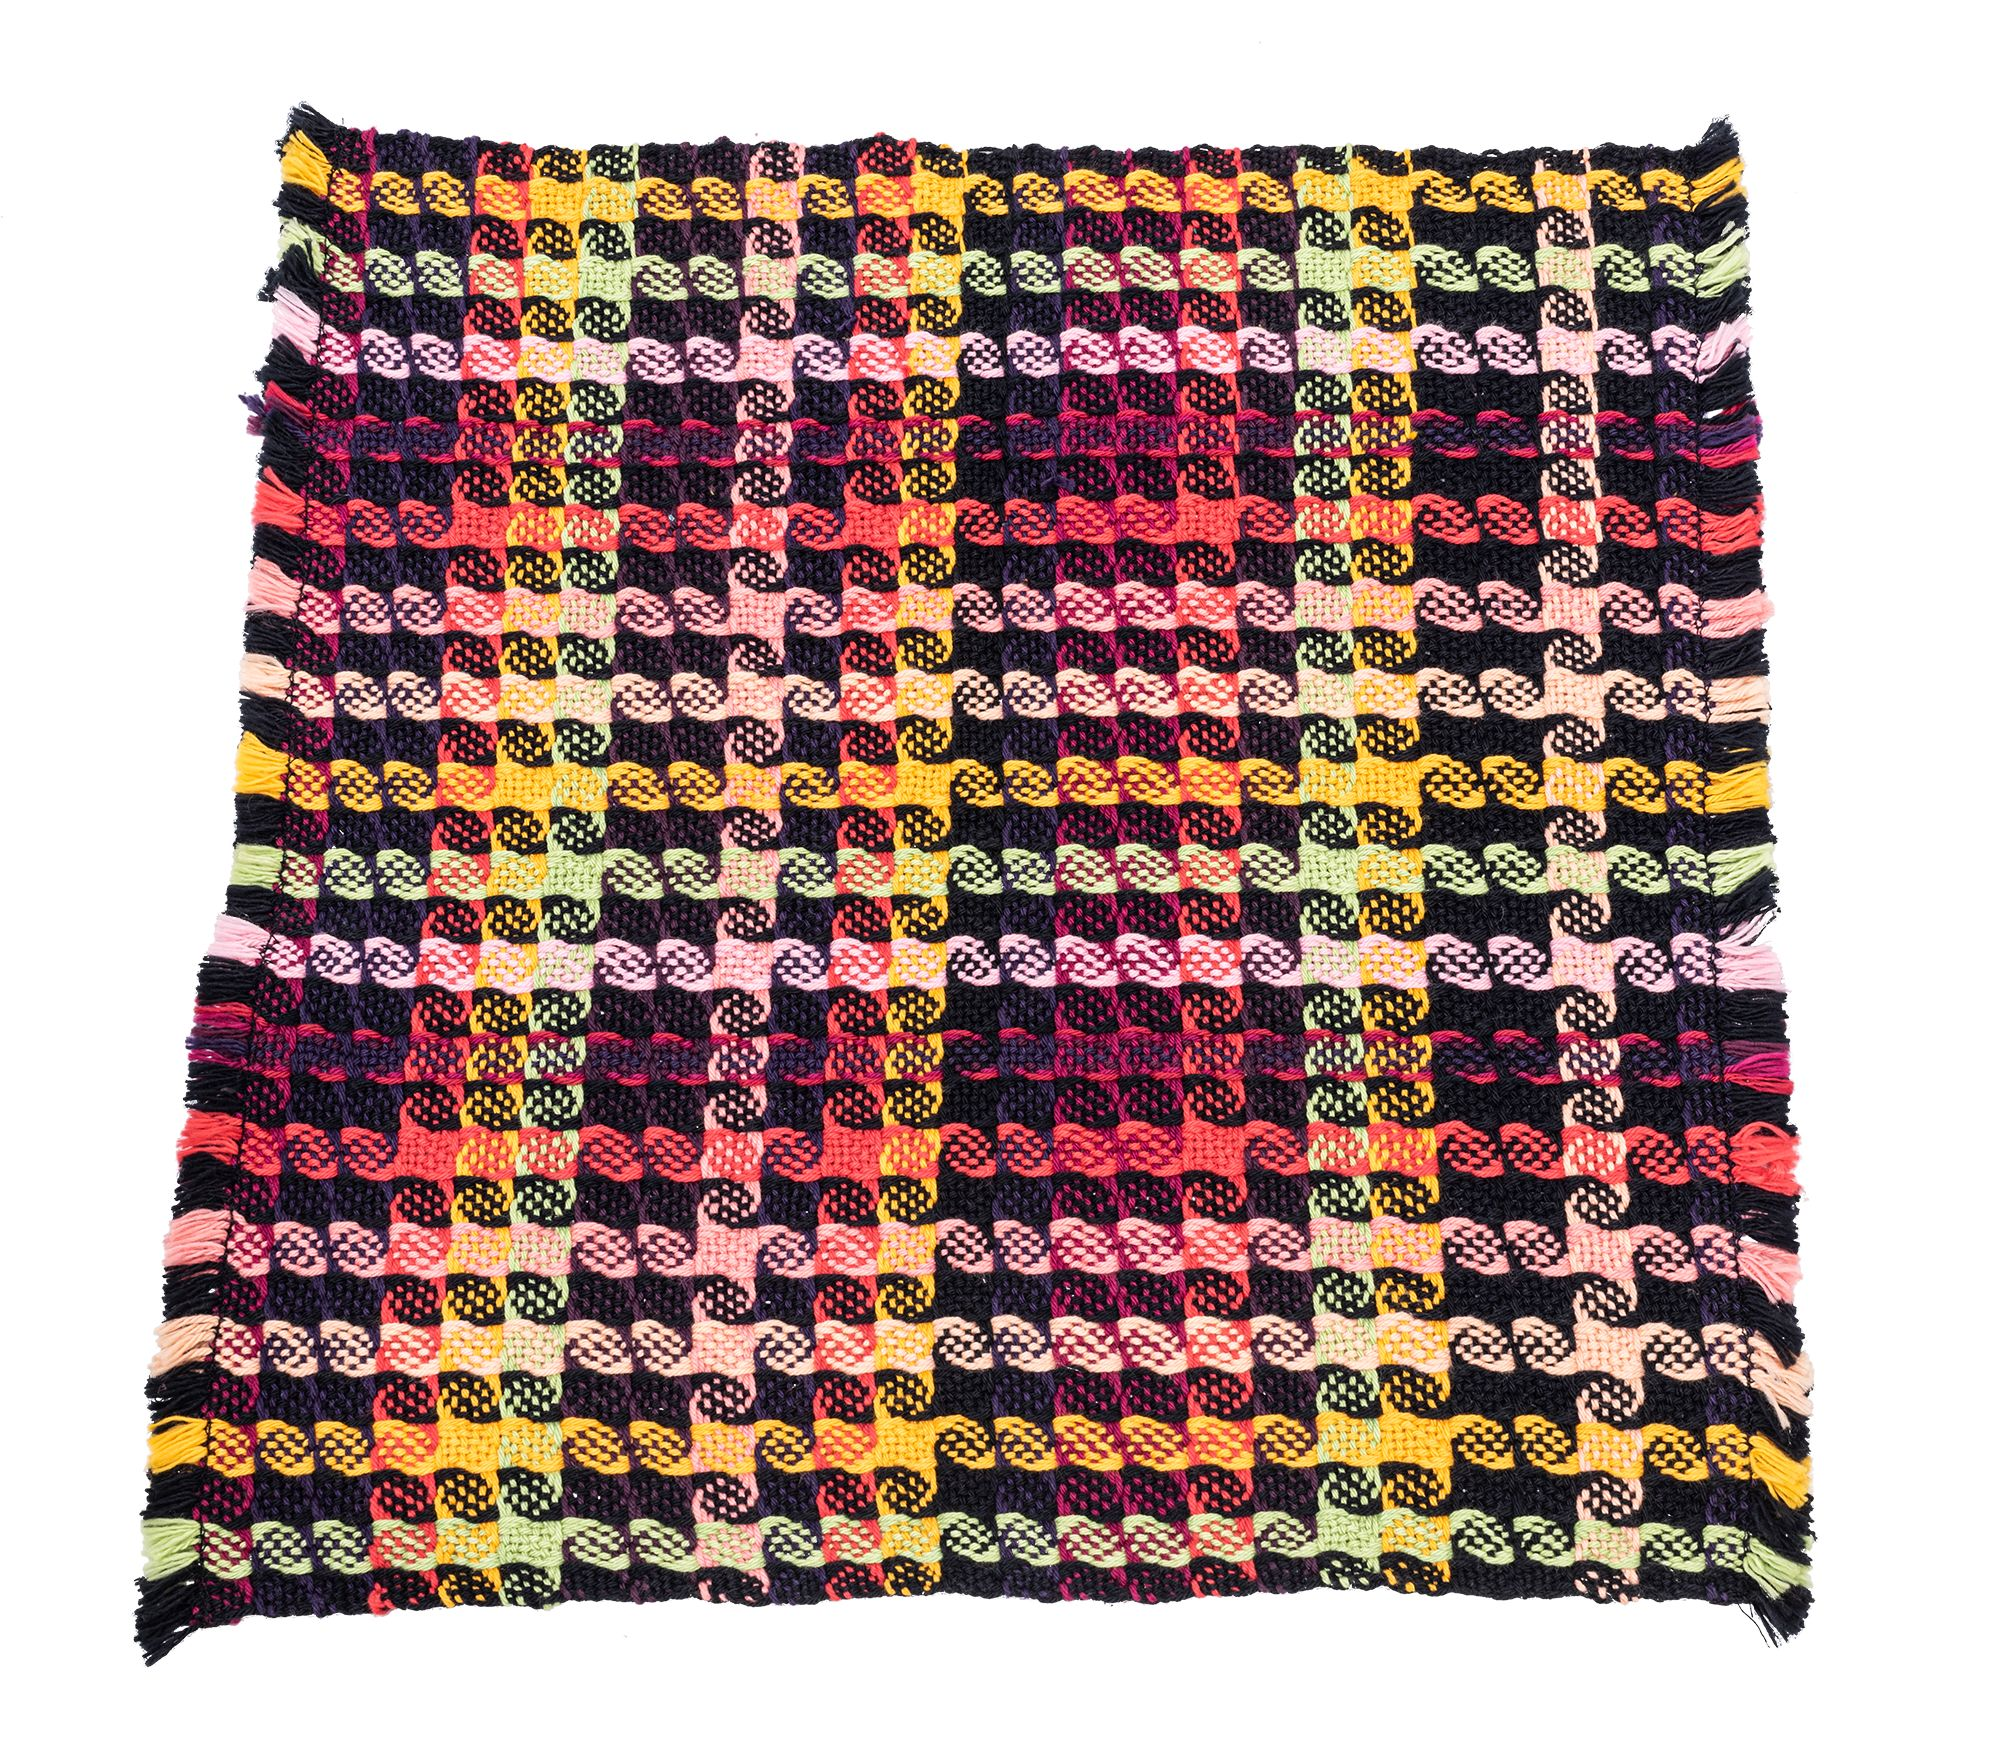 Mountain Valley Weavers  X Aspen Art Museum Set of Four Black and Pink Ombre Napkins